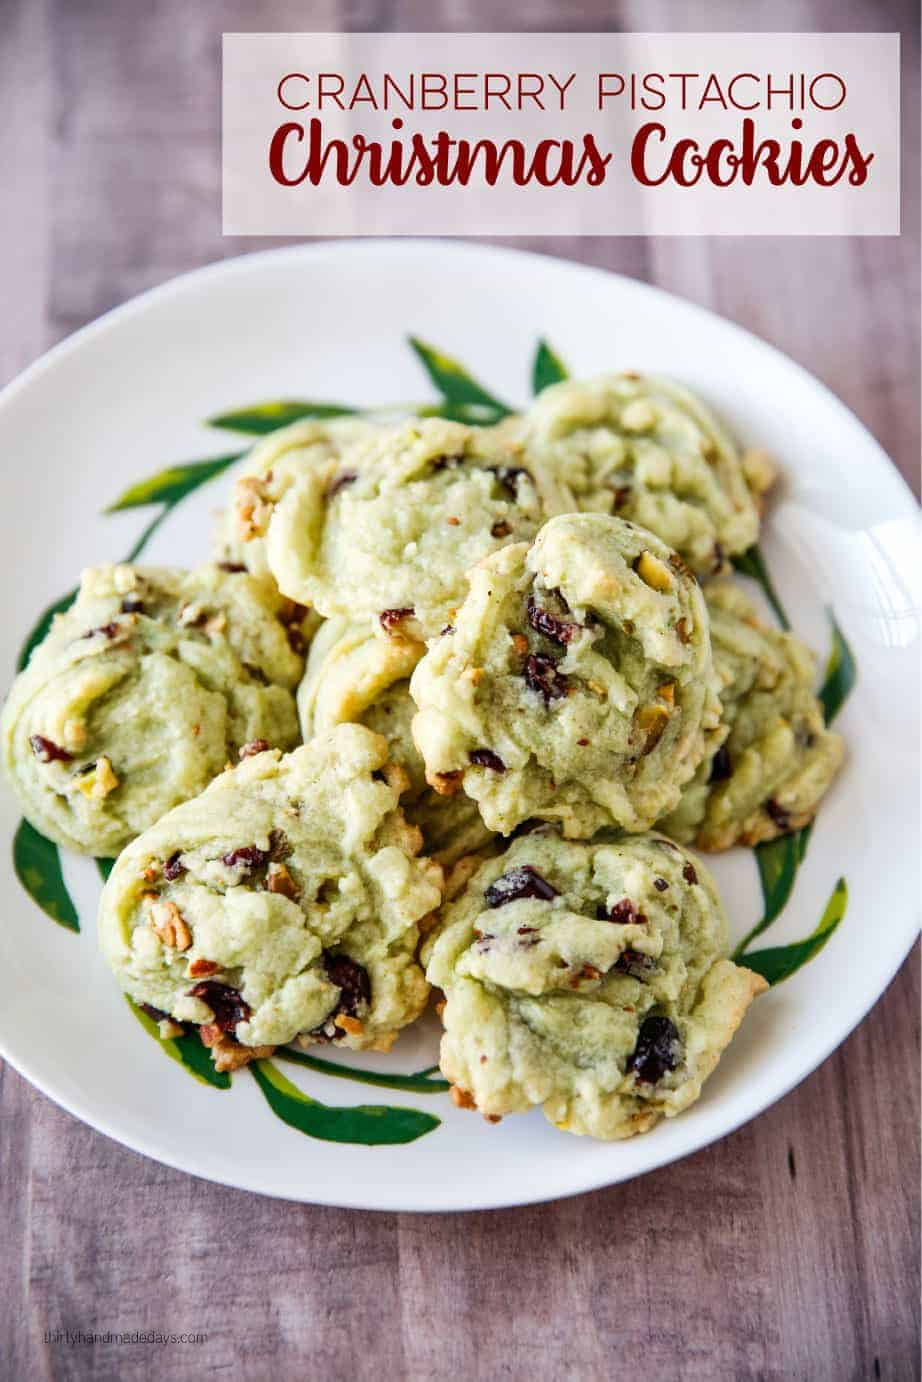 Cranberry Pistachio Christmas Cookies by Thirty Handmade Days | The Best Ever Christmas Cookies | Dozens and dozens of delicious Christmas Cookie Recipe ideas!